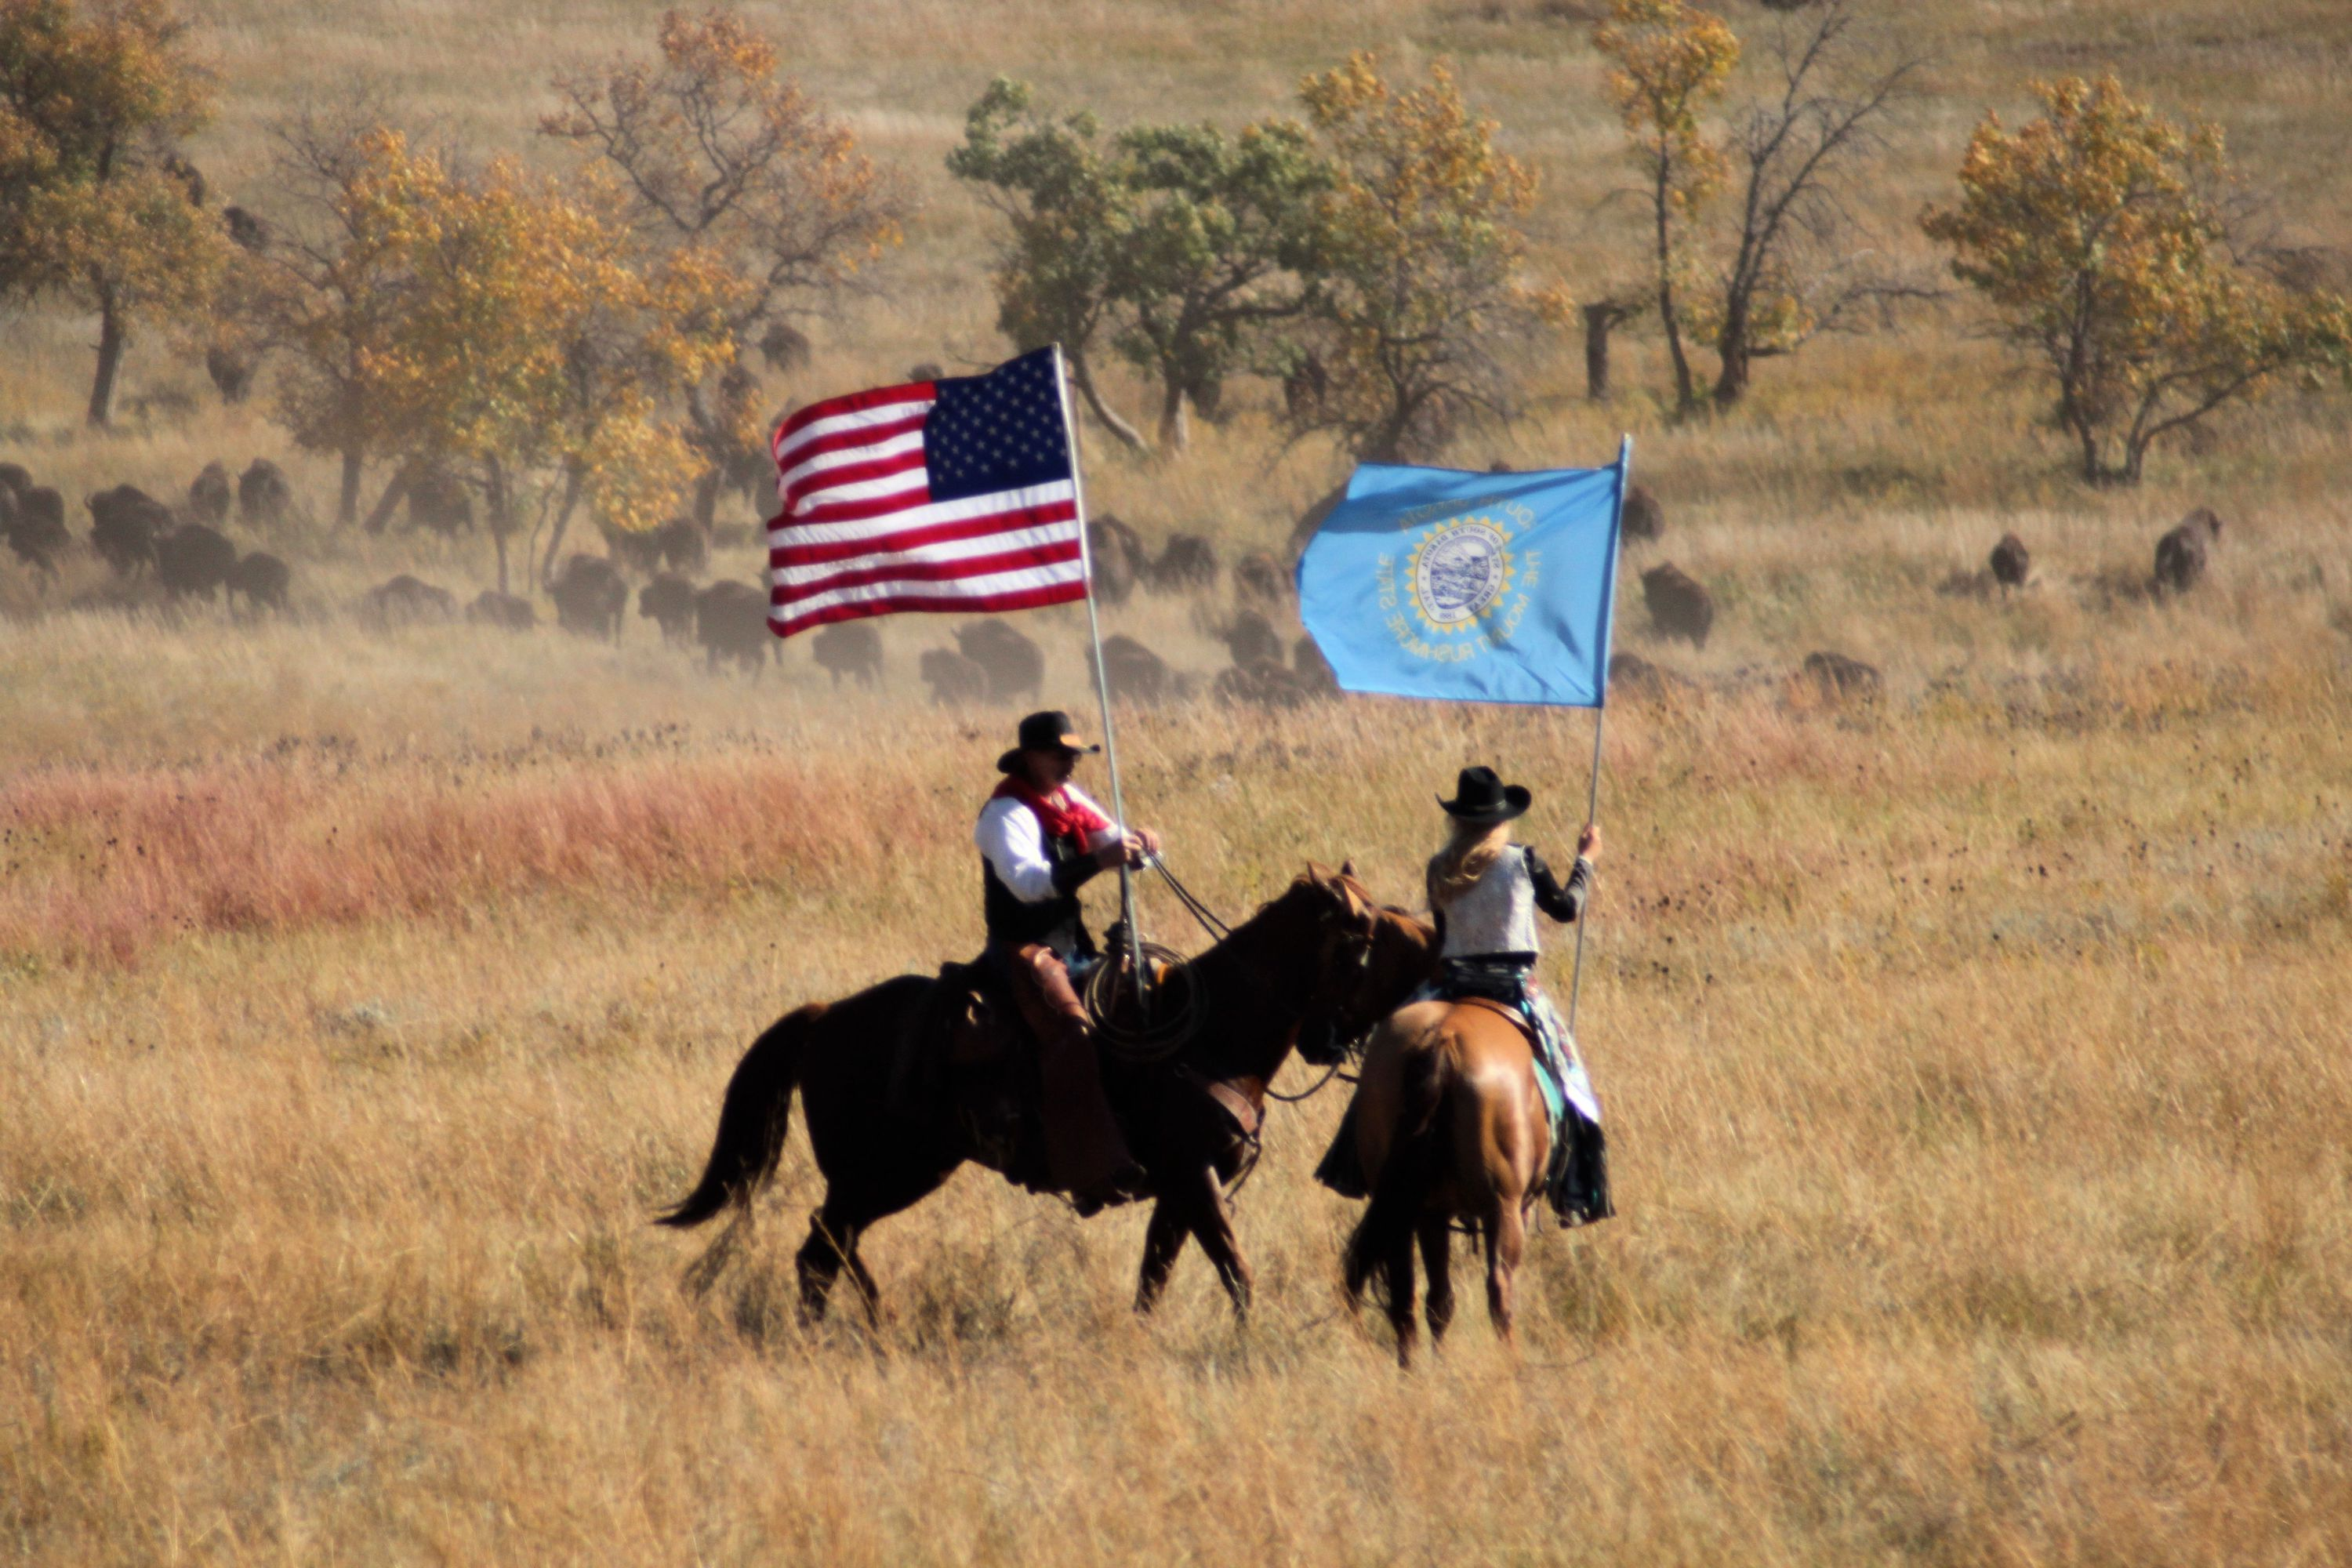 Tim Giago: South Dakota continues to ignore history with annual buffalo roundup